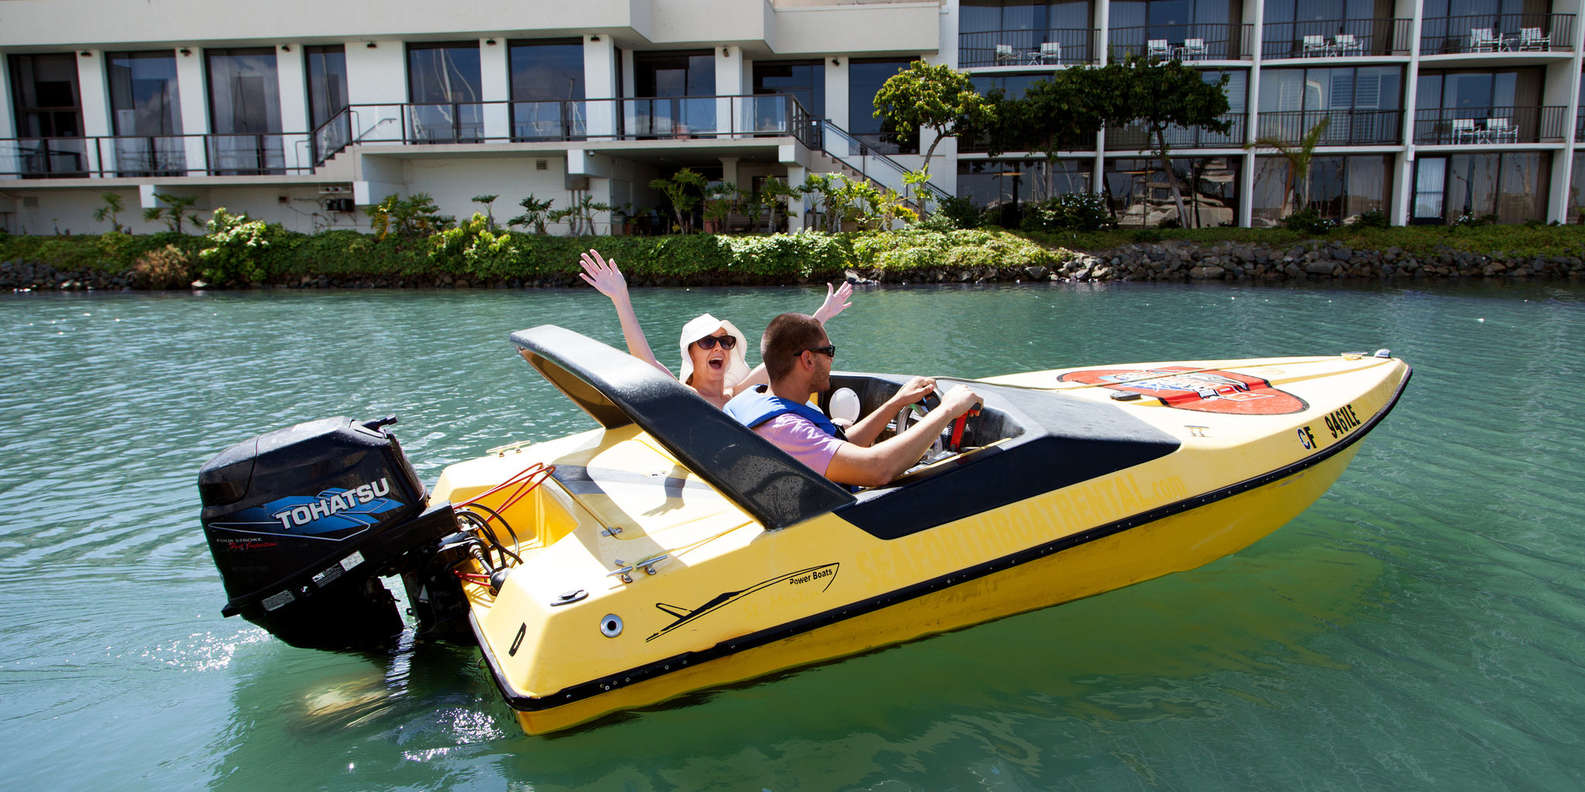 Cruise around on a Speed Boat